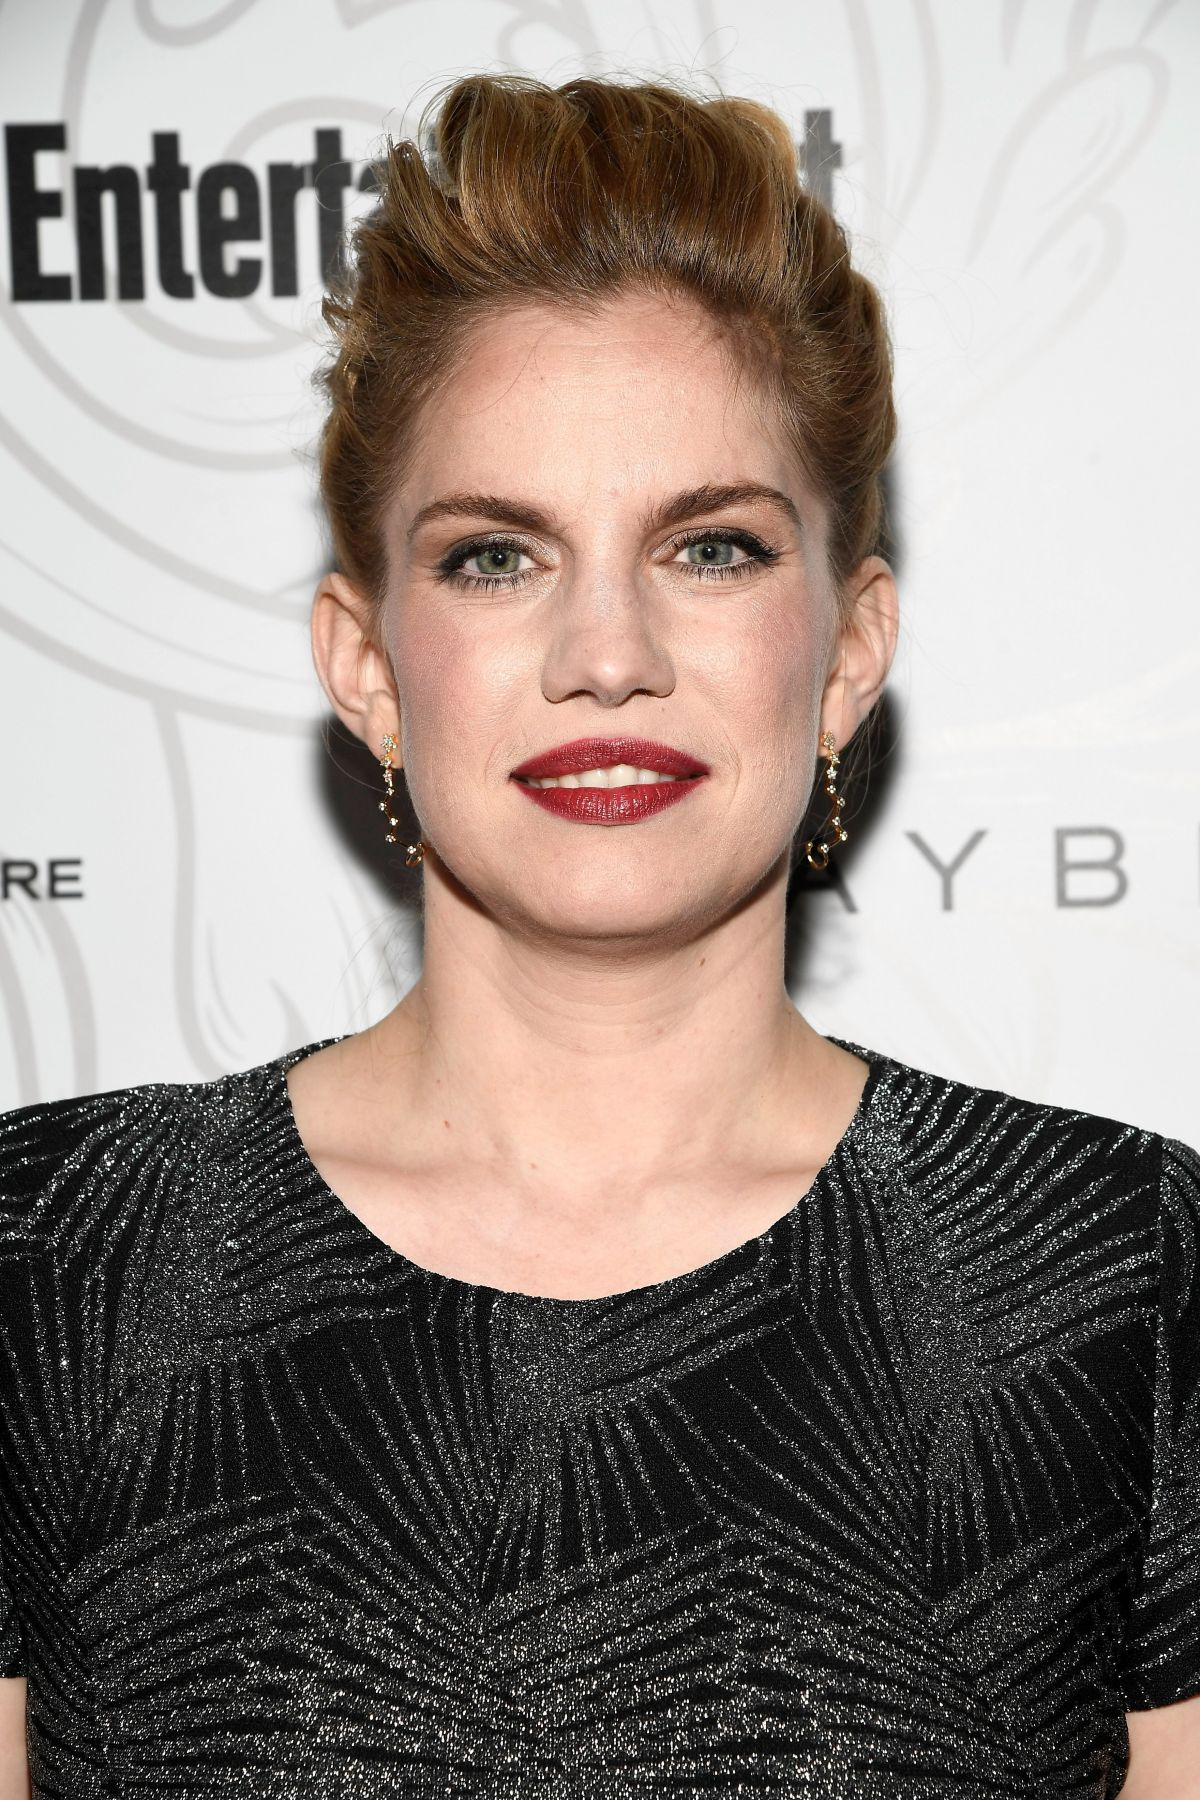 ANNA CHLUMSKY at Entertainment Weekly Celebration of SAG Award Nominees in Los Angeles 01/28/2017